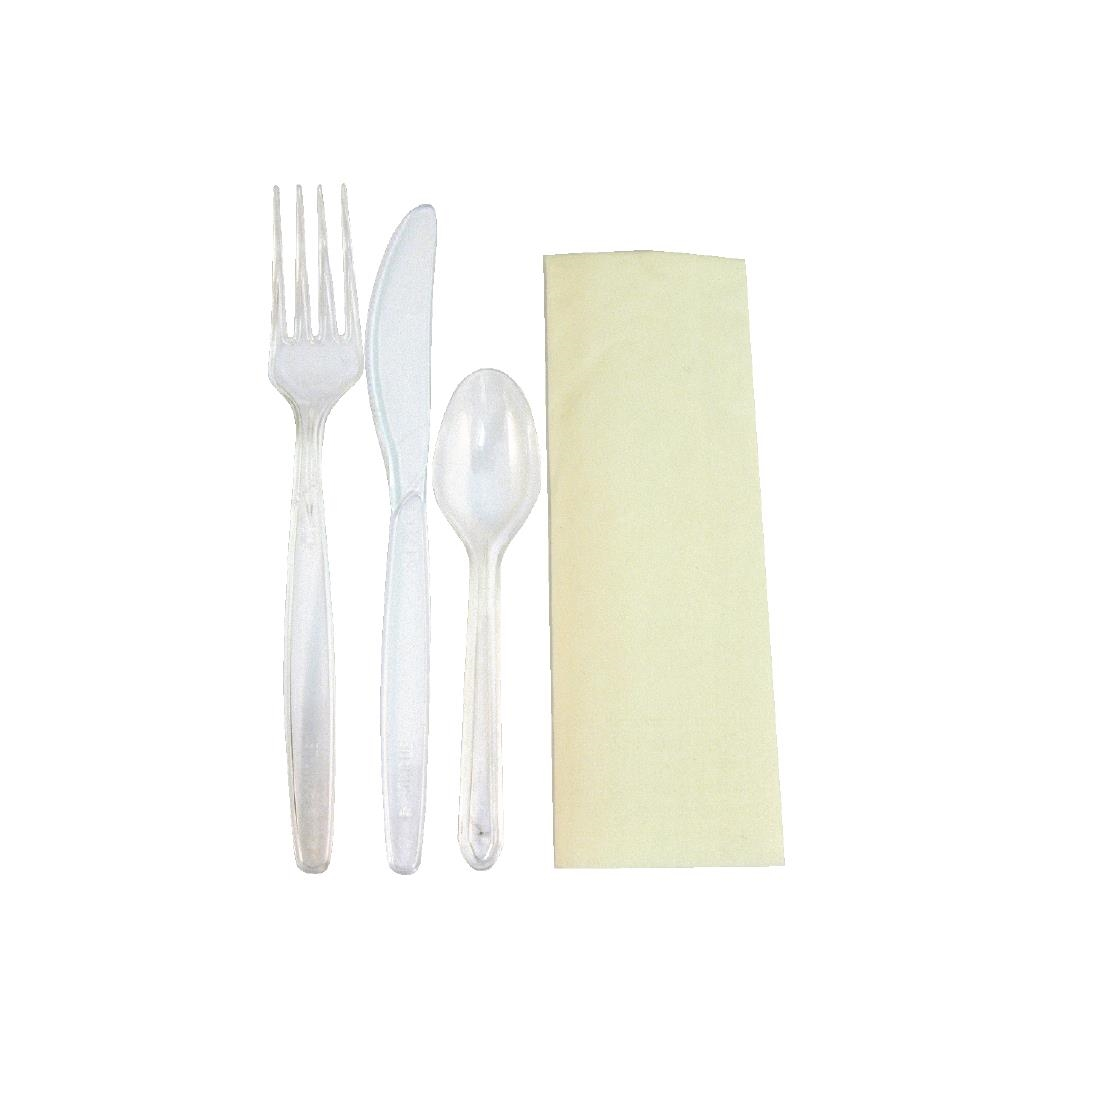 Image of eGreen Deluxe Individually Wrapped Heavy-Duty Disposable Cutlery Sets (Pack of 250) Pack of 250